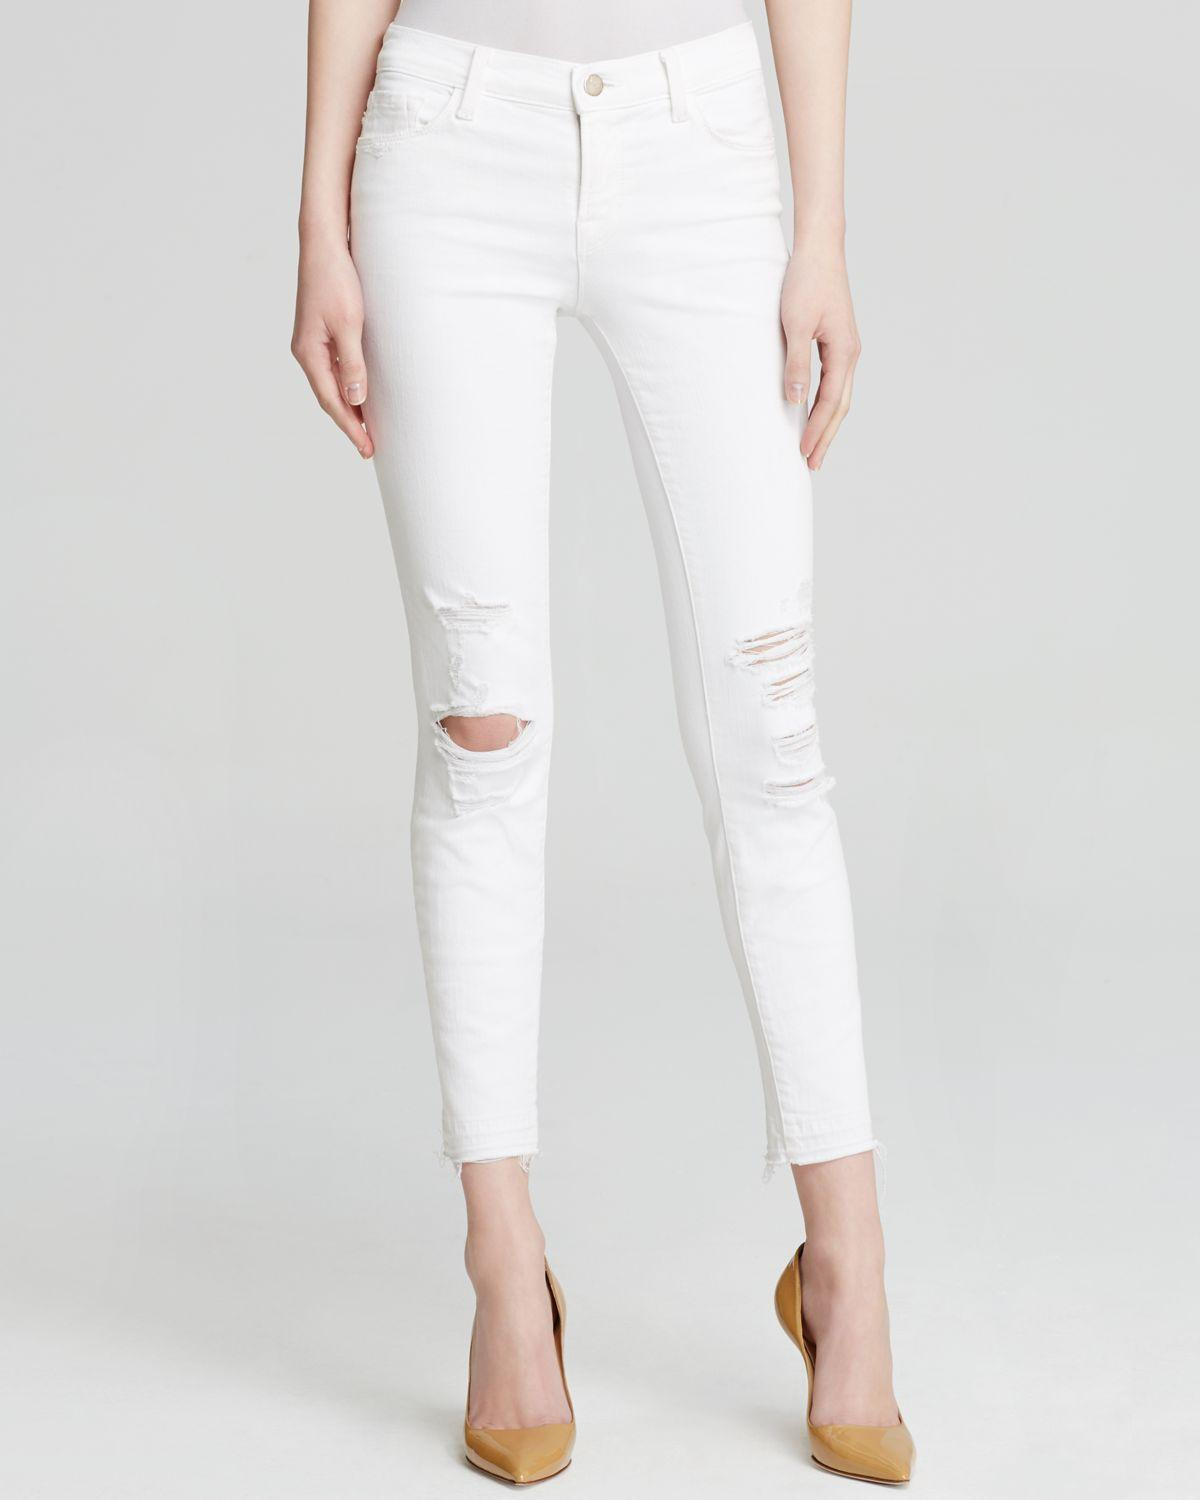 J brand Jeans - Low Rise Ankle Skinny In Demented in White | Lyst